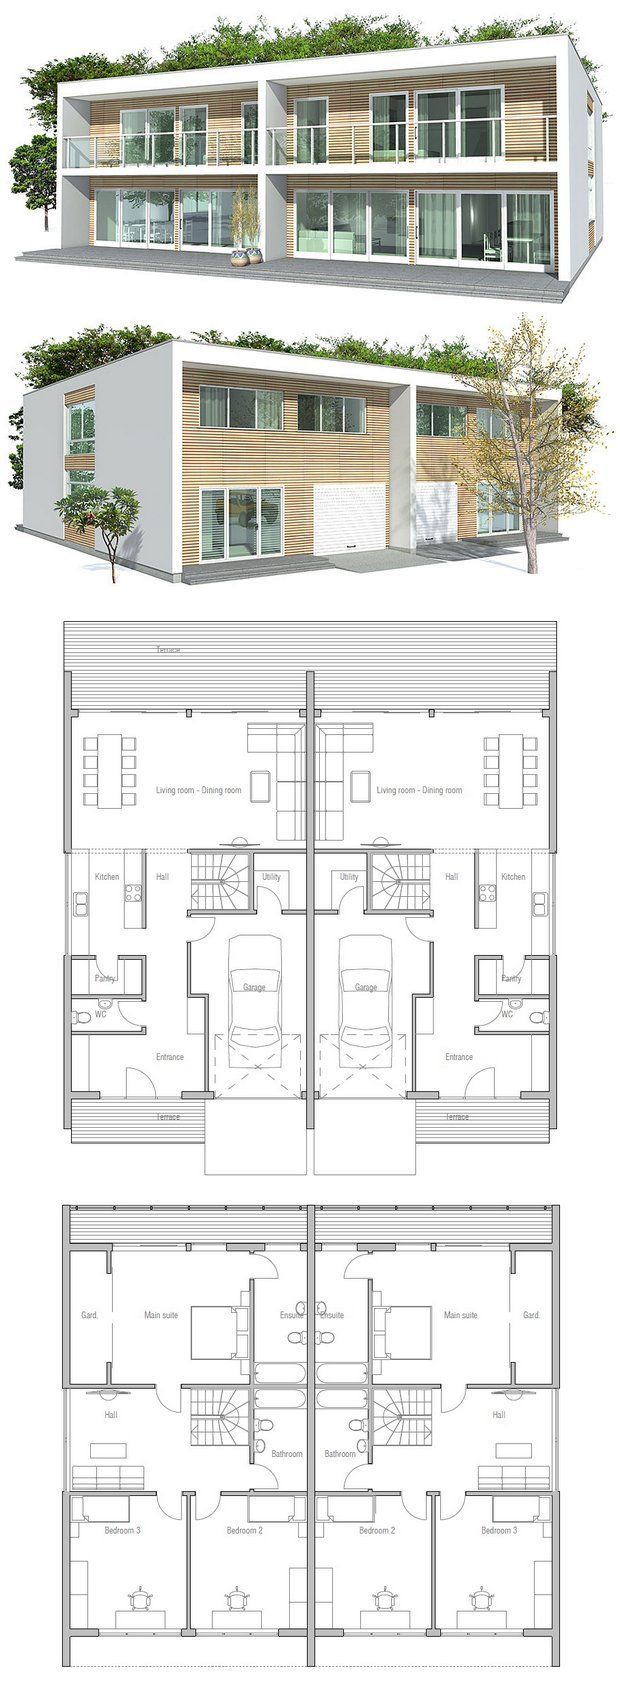 Best 25 duplex house plans ideas on pinterest duplex for Duplex apartment plans